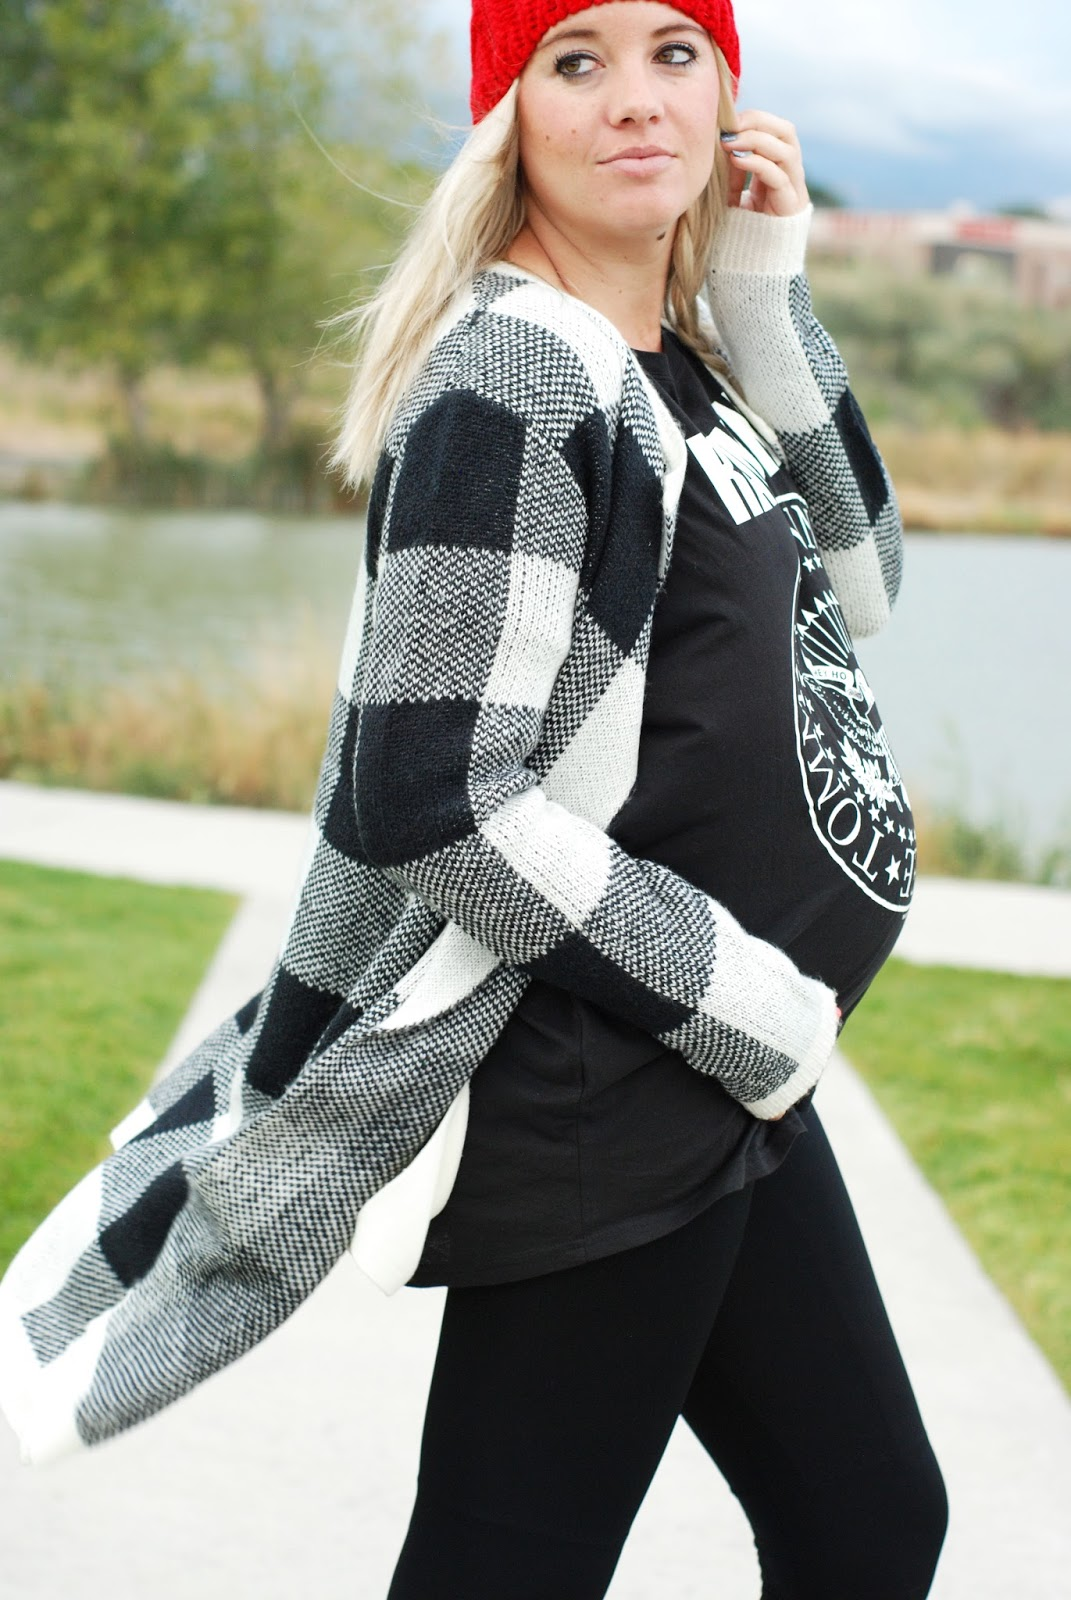 Long Tall Sally, Utah Fashion Blogger, Pregnant Outfit